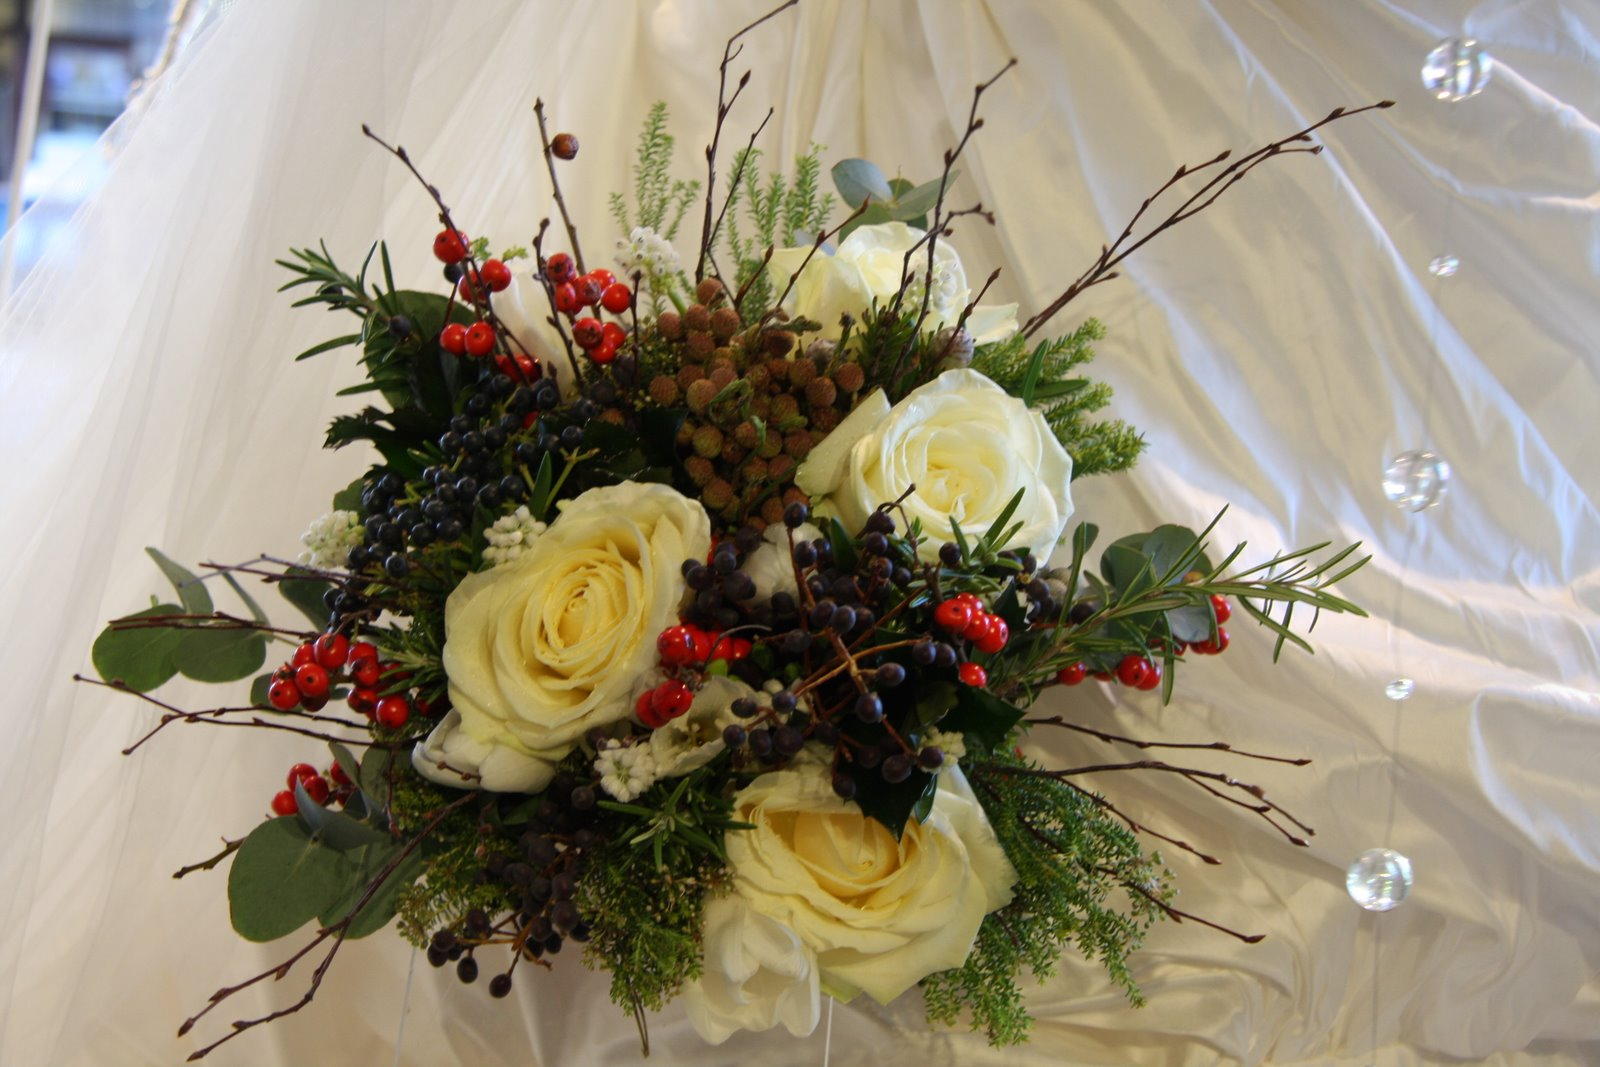 The flower magician rustic christmas wedding bouquet rustic christmas wedding bouquet izmirmasajfo